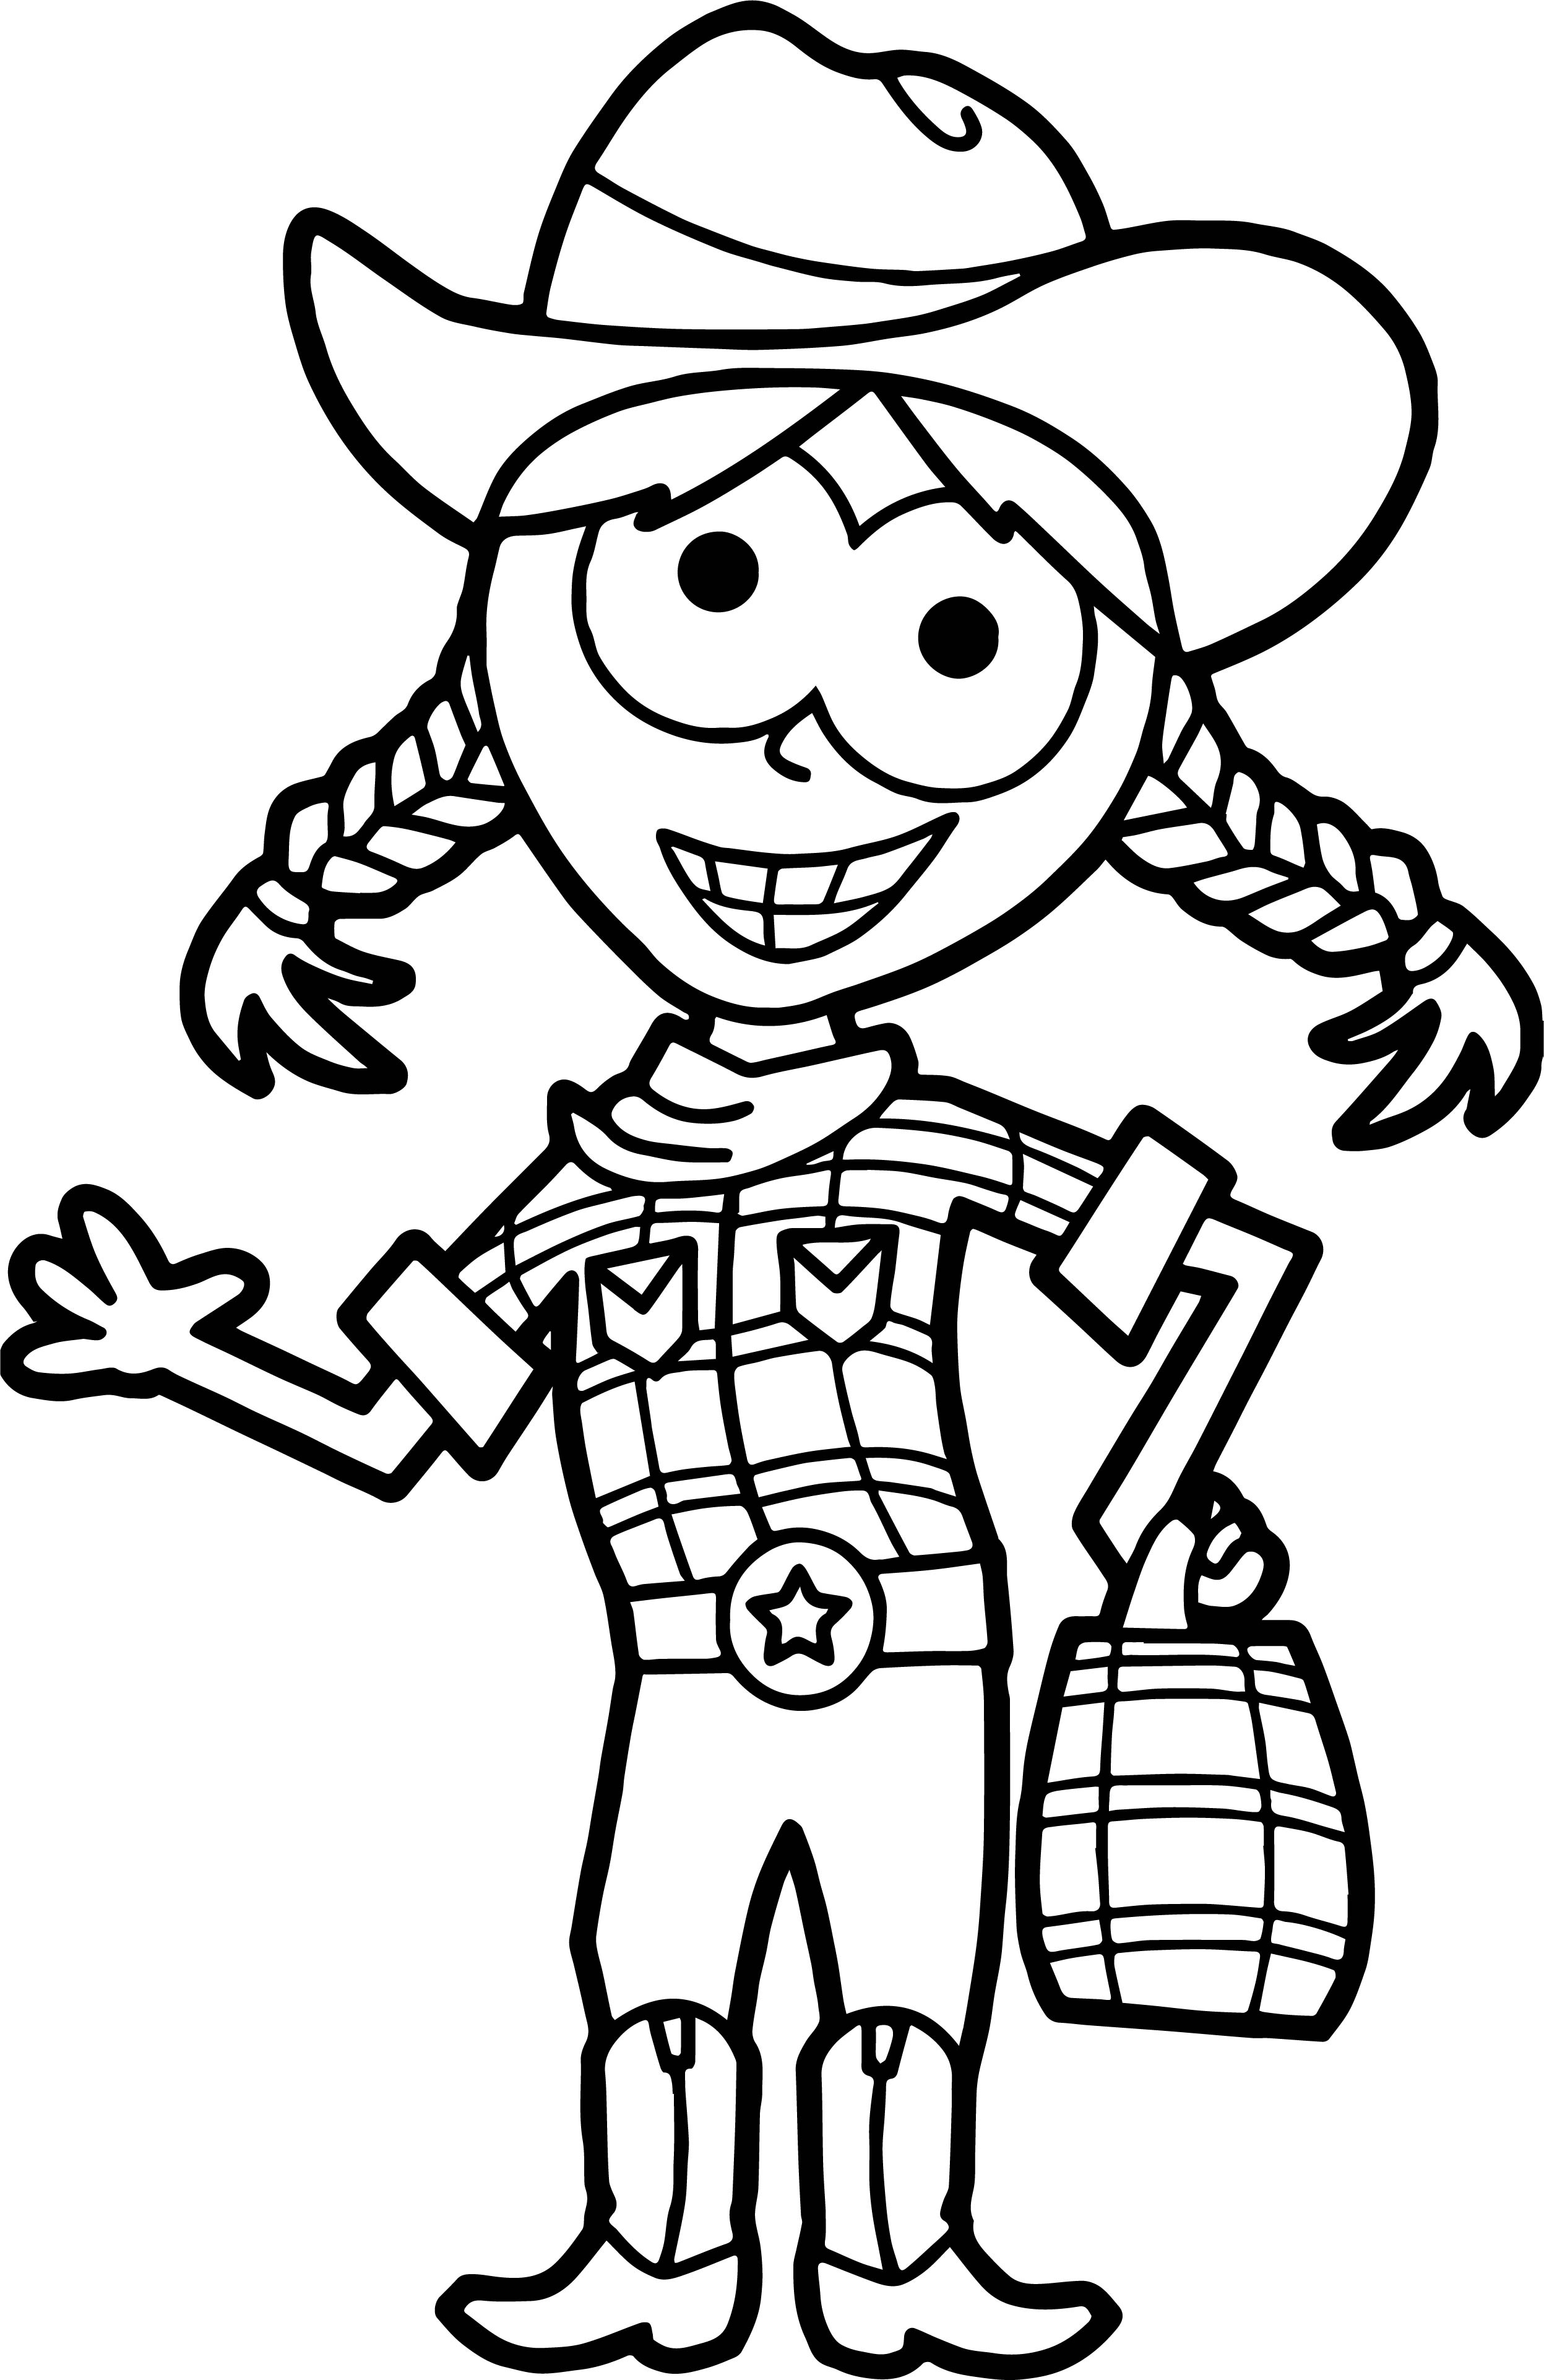 Home Free Halloween Trick Or Treat Cowgirl Free Coloring Page